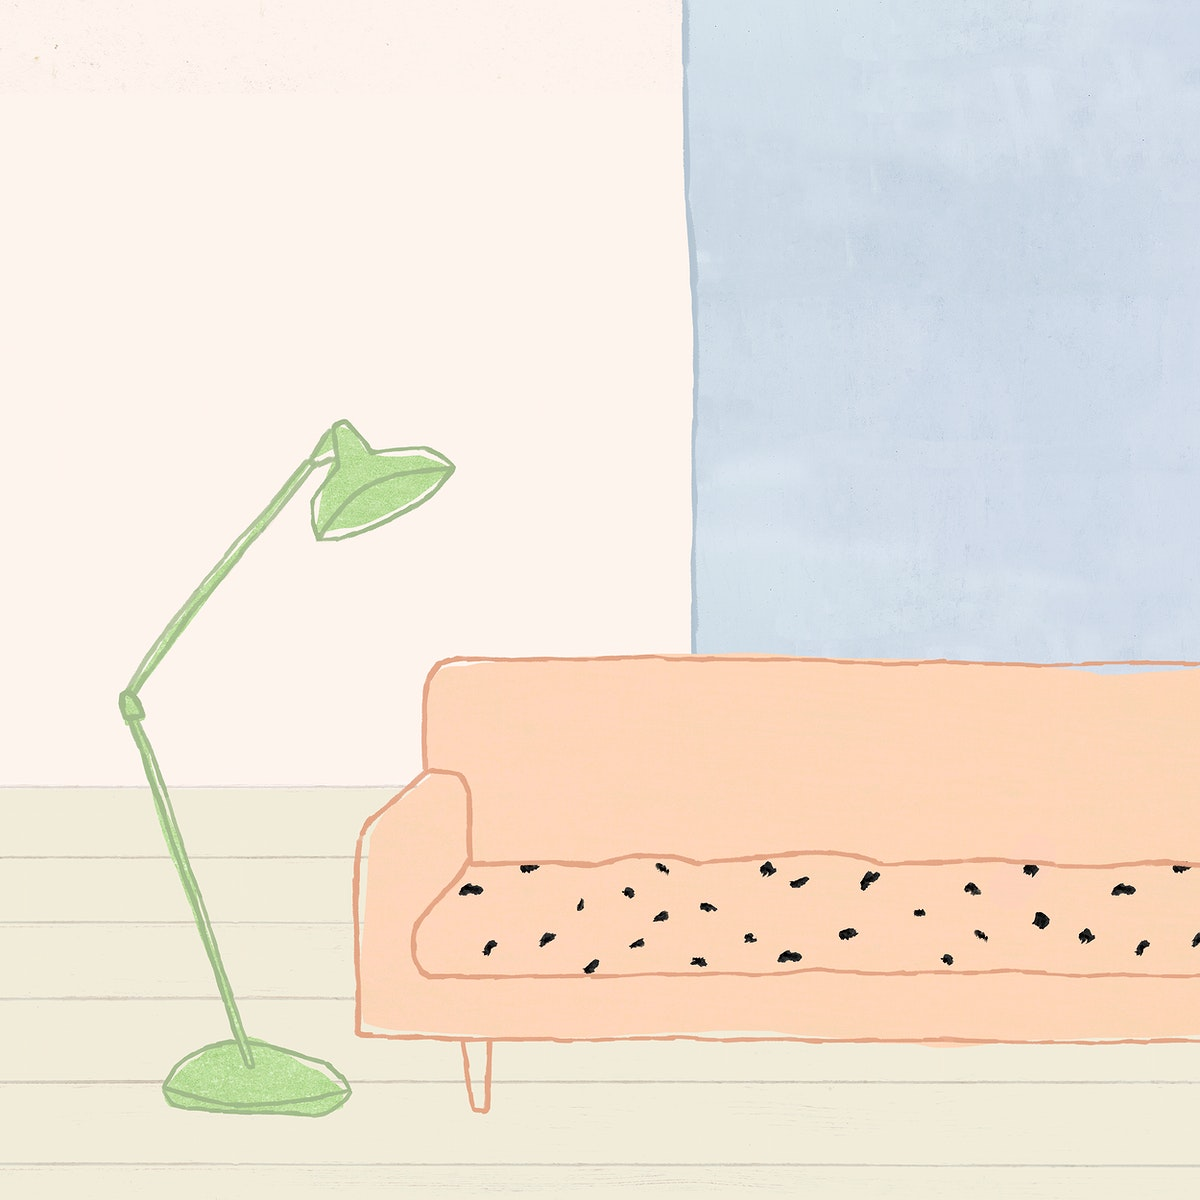 Sofa and lamp background psd cute home interior illustration for social media post